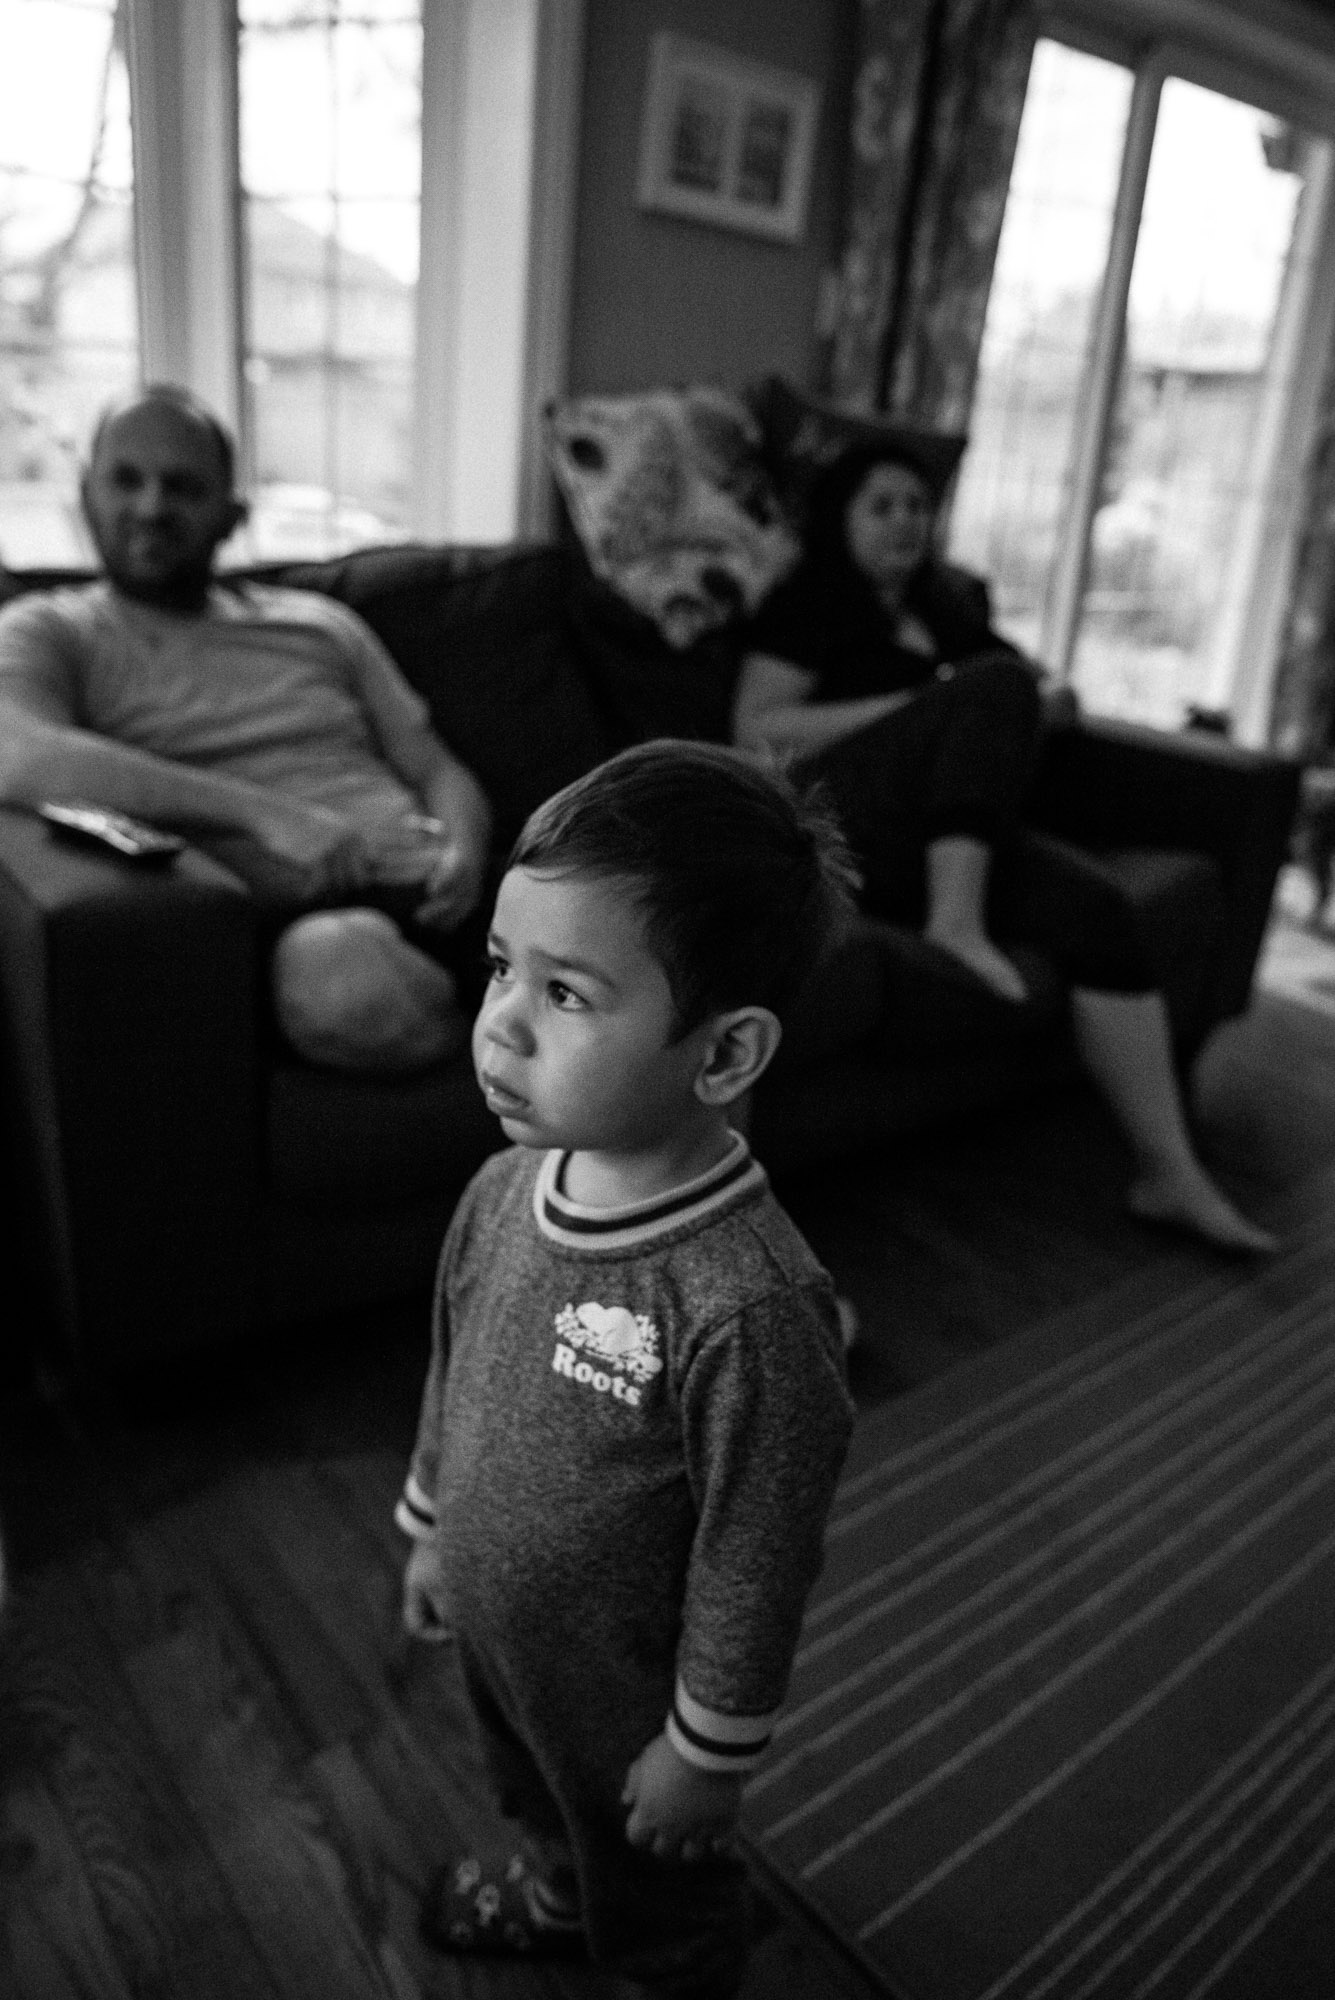 toddler stands in front of TV and watches